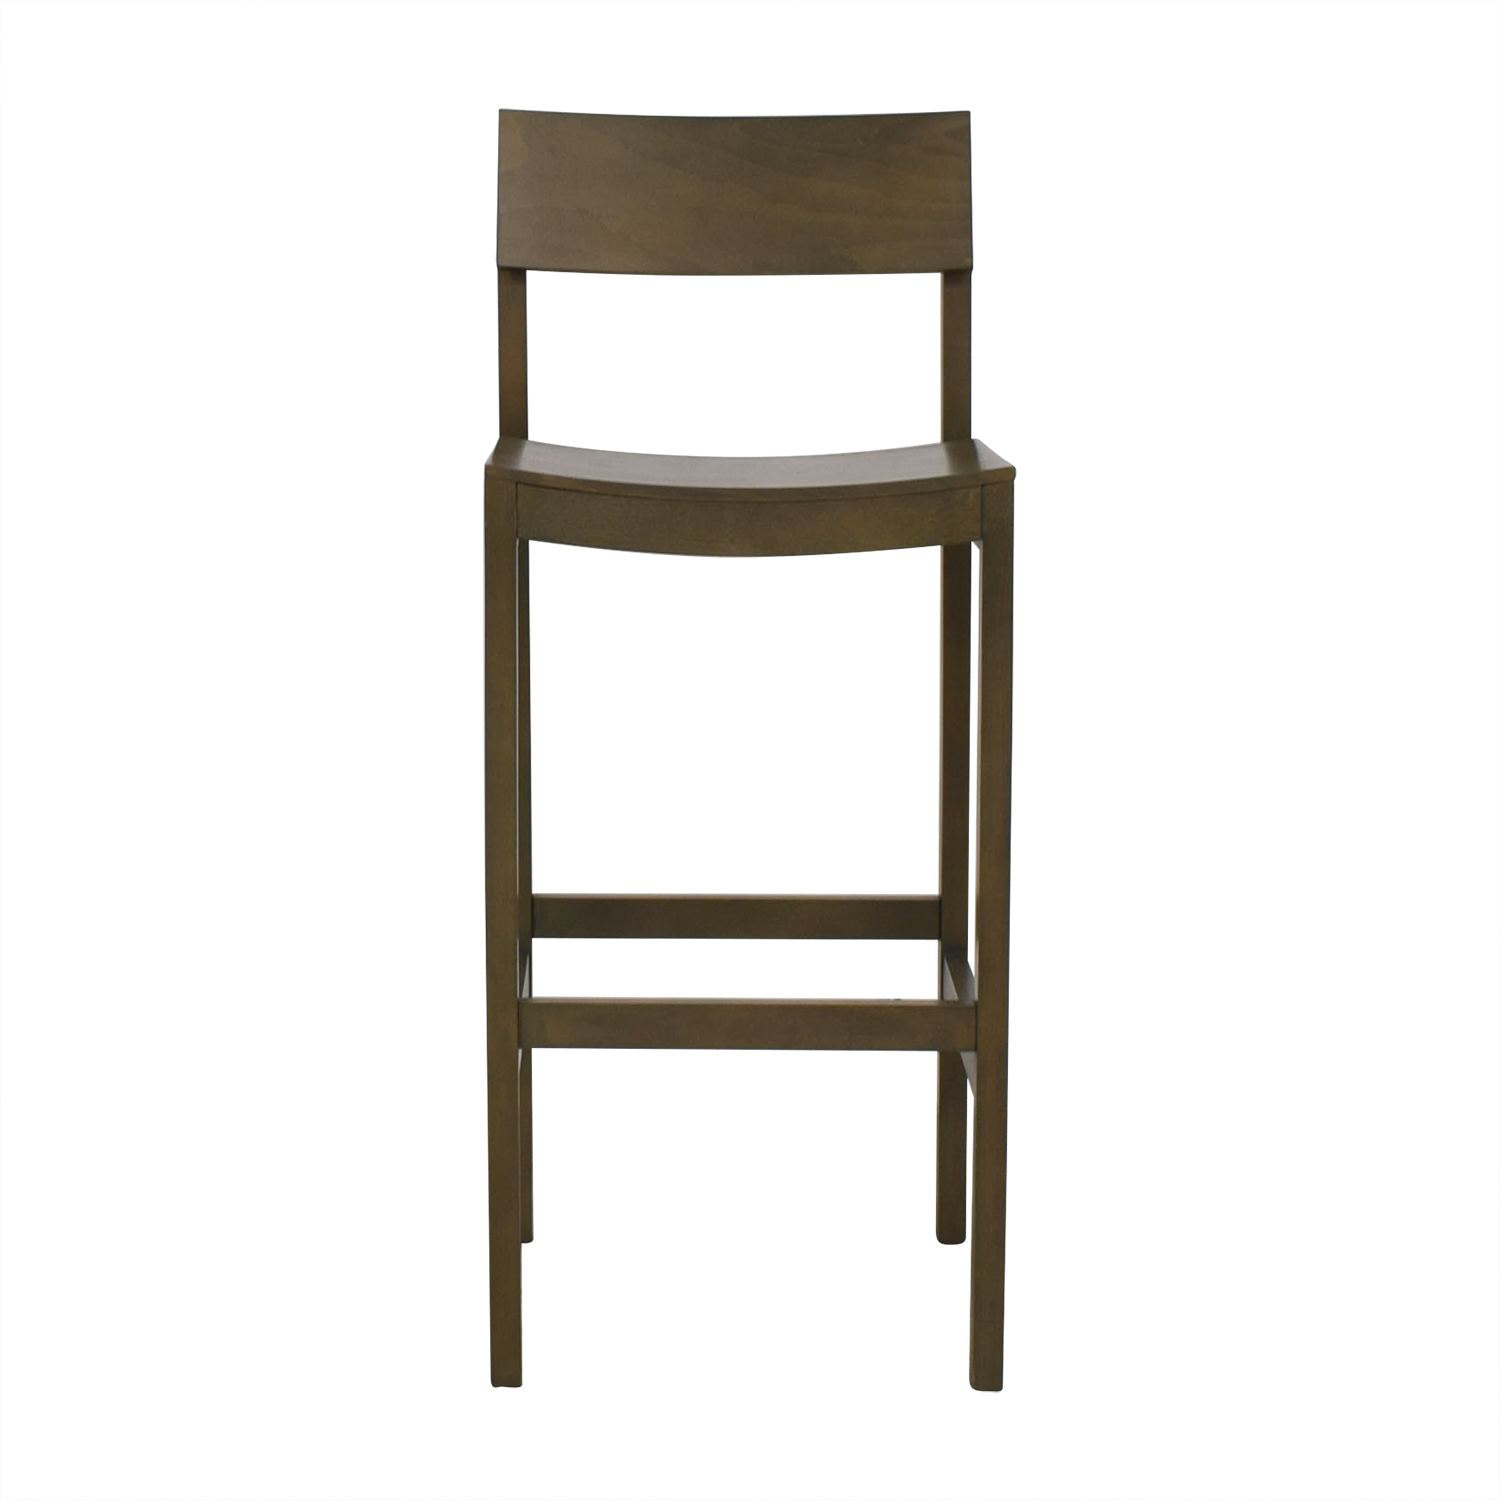 Miraculous 66 Off Cb2 Cb2 Counter Stool Chairs Unemploymentrelief Wooden Chair Designs For Living Room Unemploymentrelieforg